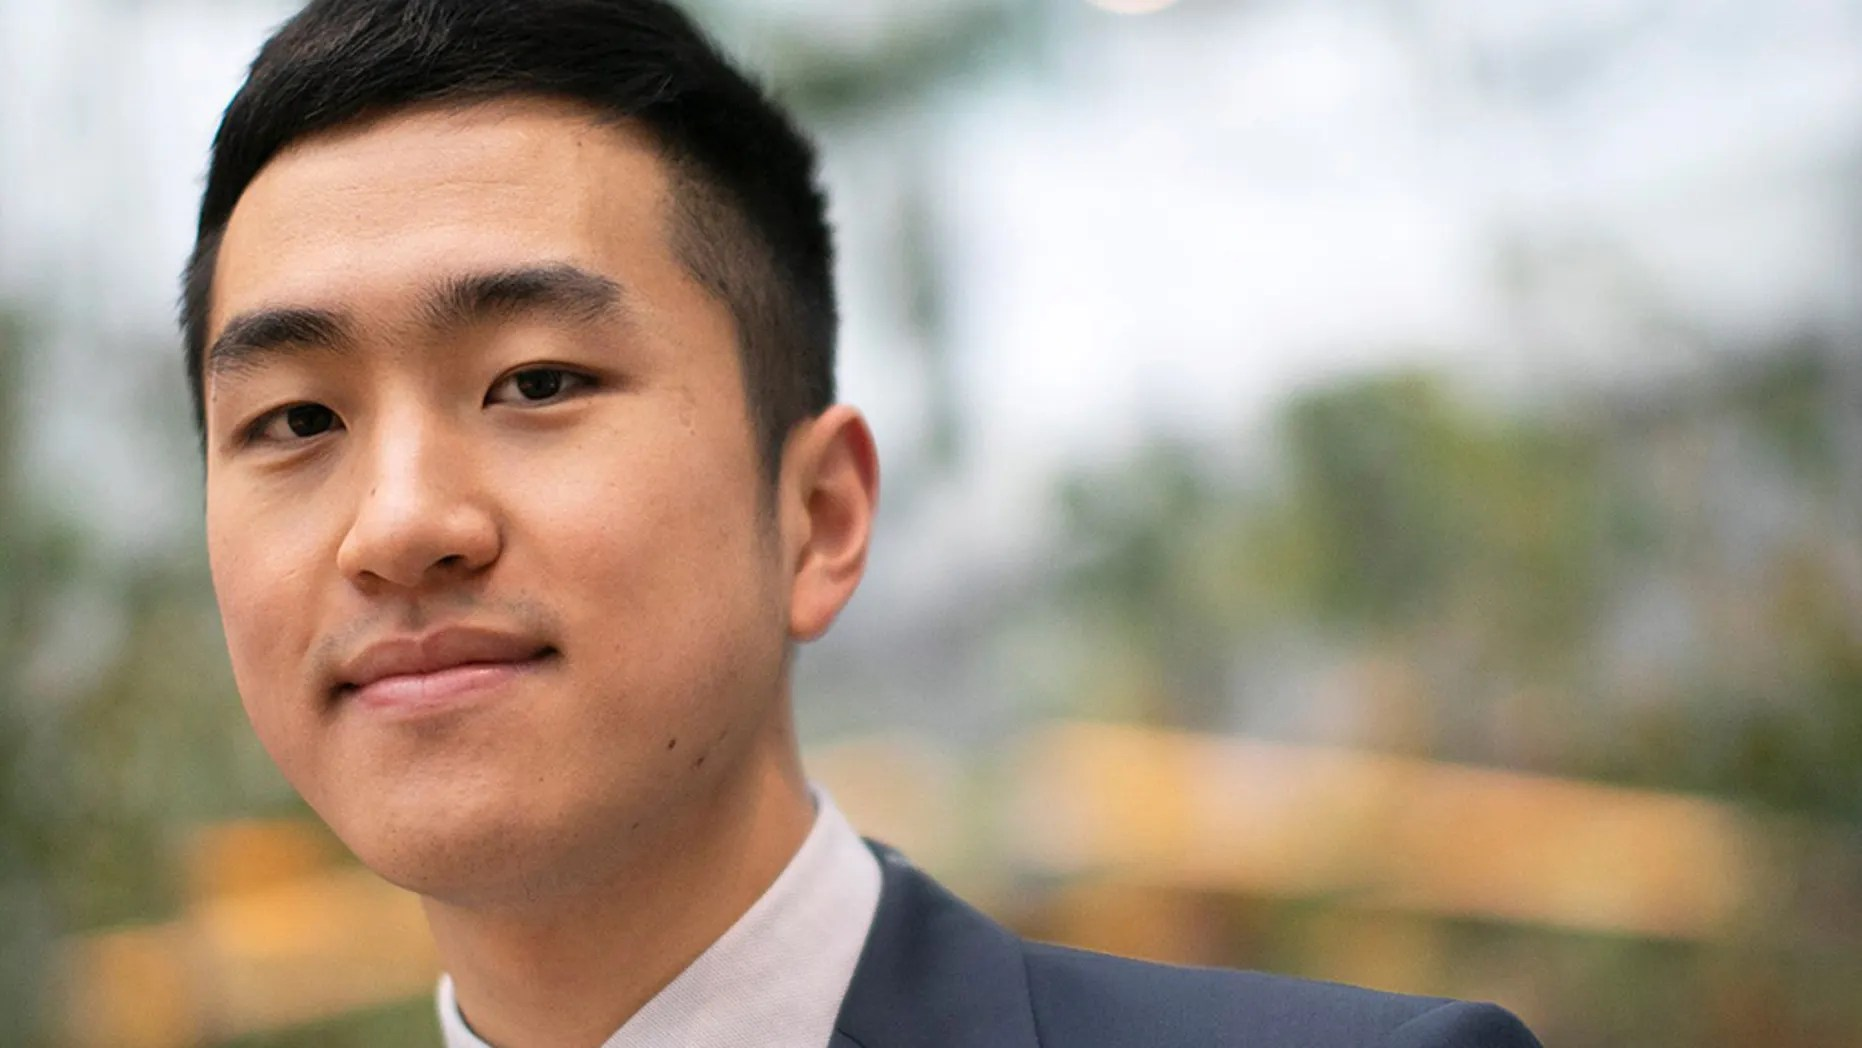 Jin Park has been awarded a Rhodes Scholarship. He is pictured in the Smith Campus Center at Harvard University.